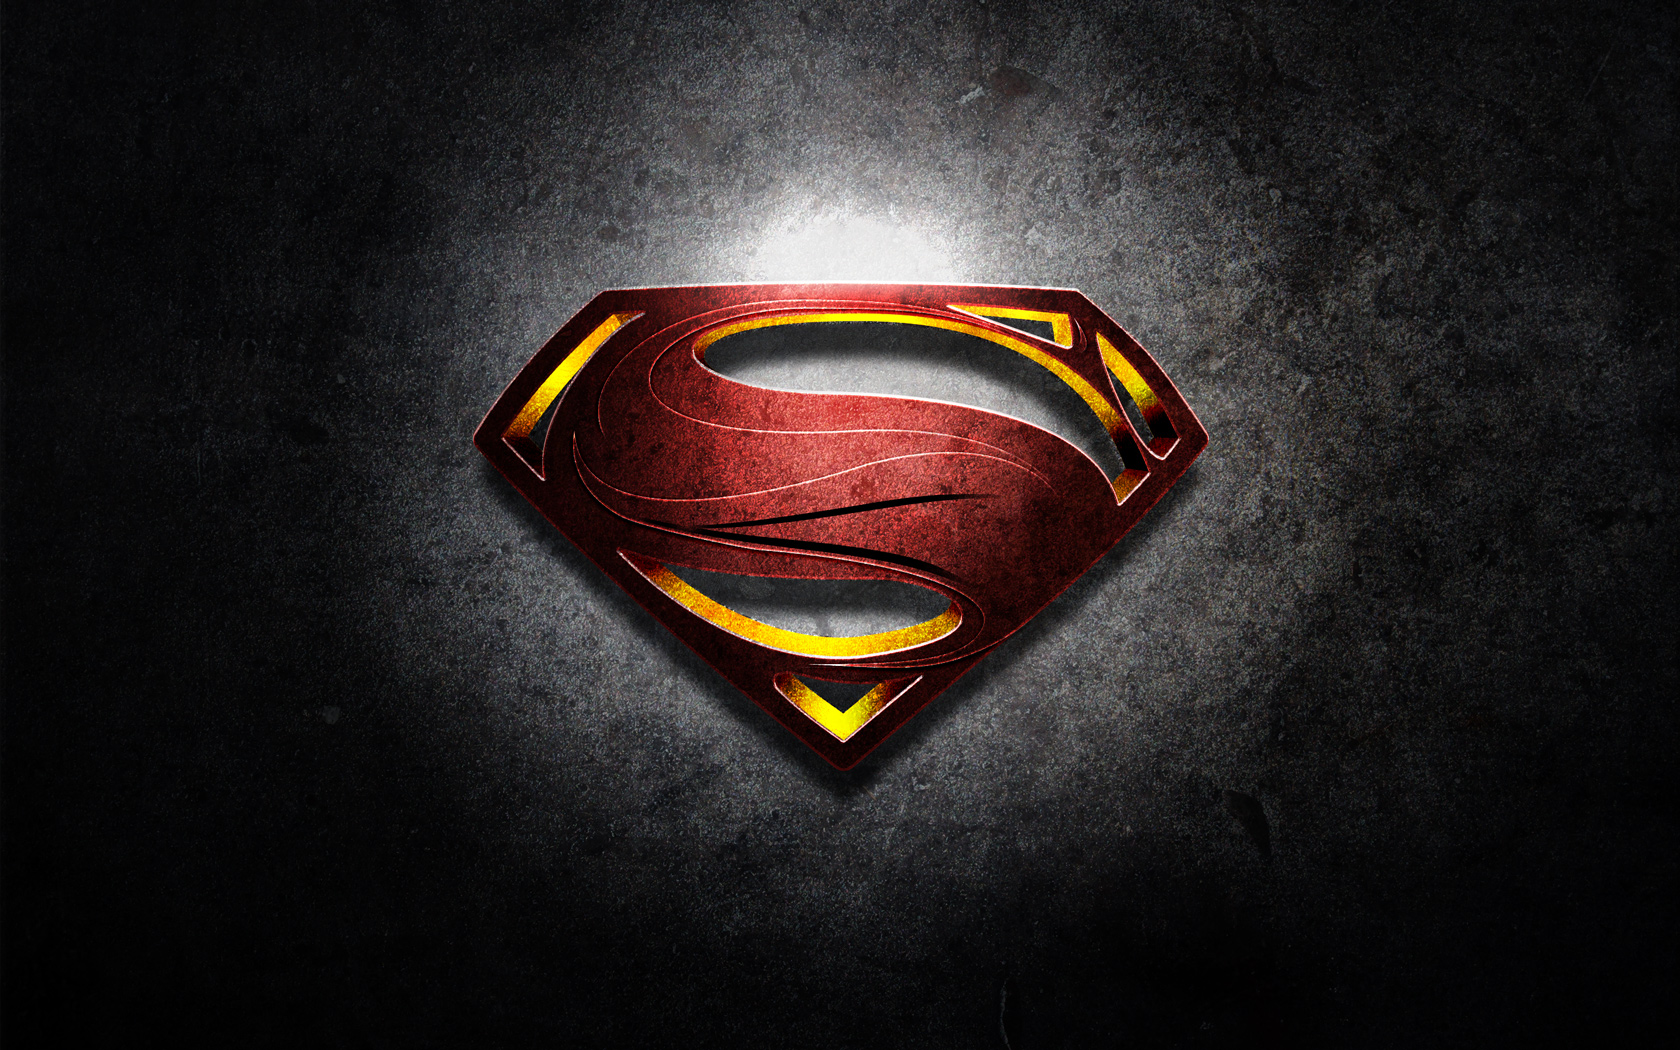 Man Of Steel Symbol In Illustrator And Photoshop